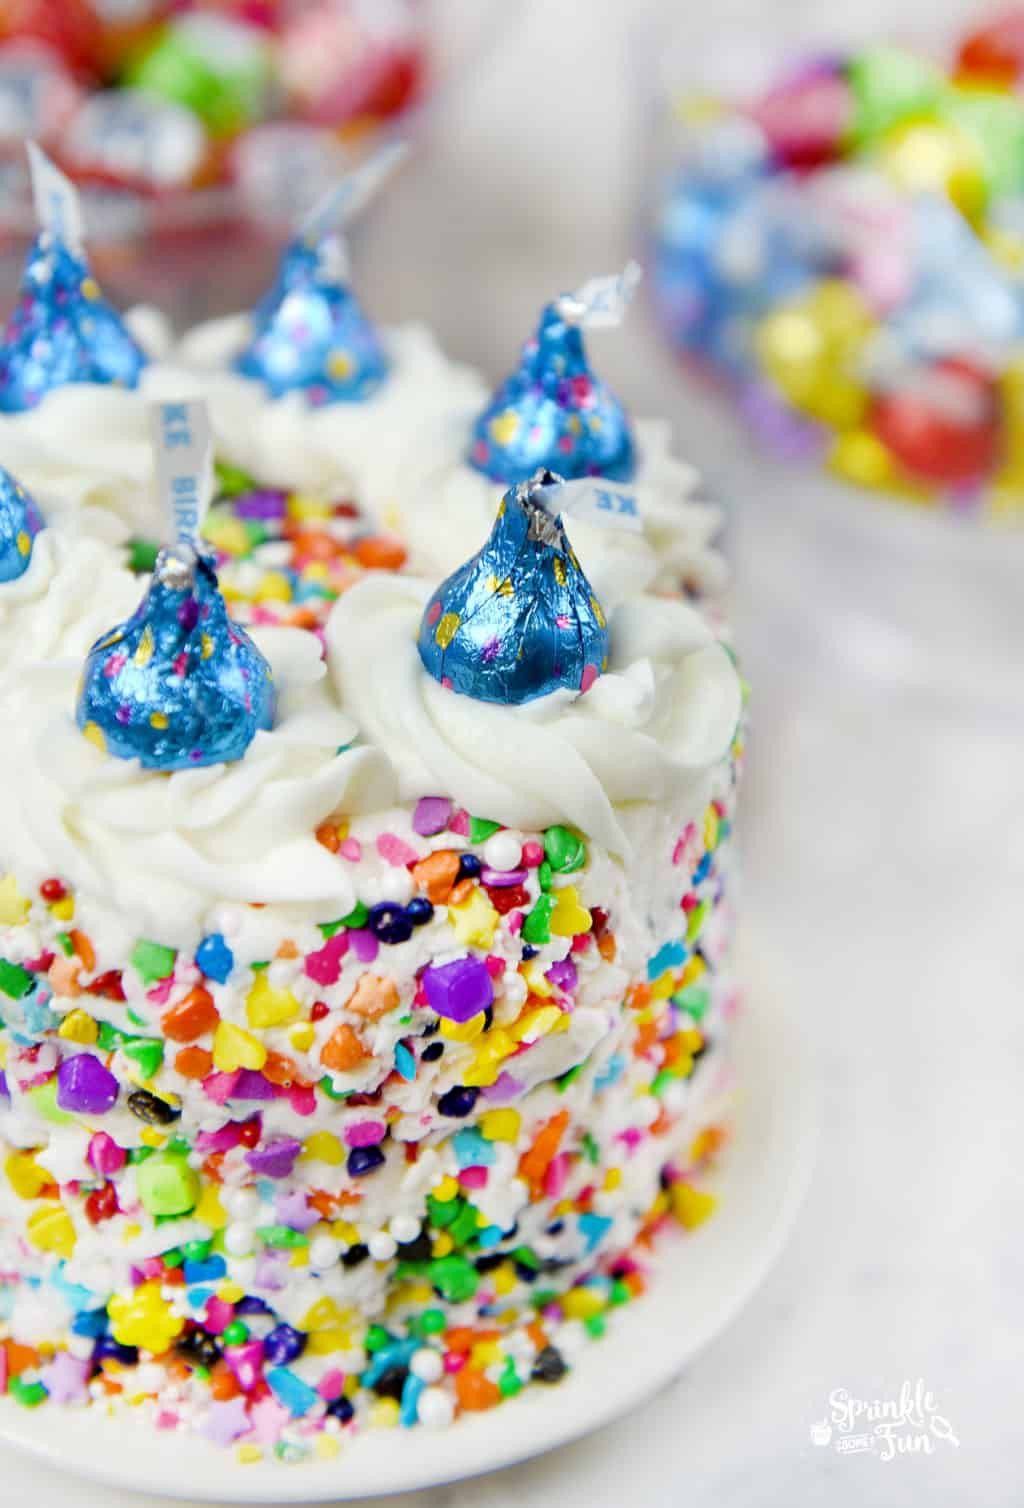 Cake Birthday Images  Sprinkle Cake with HERSHEY'S KISSES Birthday Cake Can s